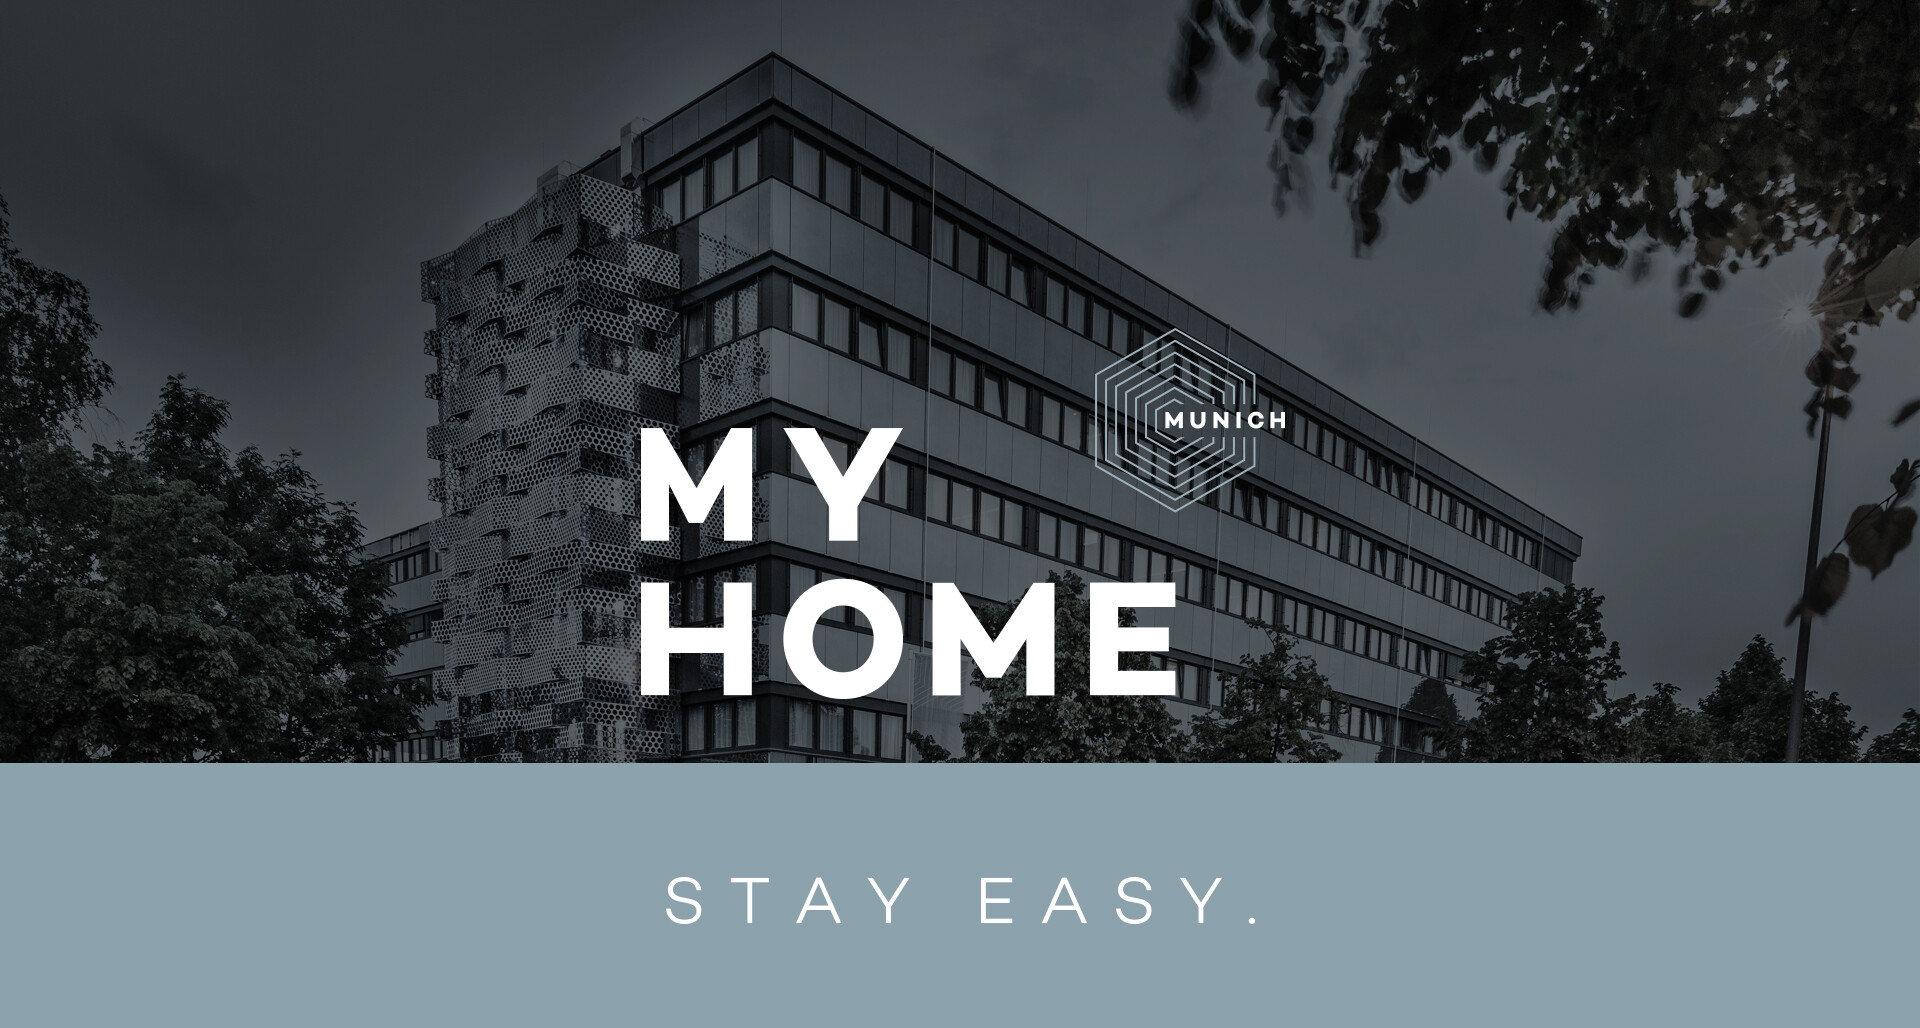 My Home | Sanmiguel Brand Partner | Logo | Munich - Stay Easy